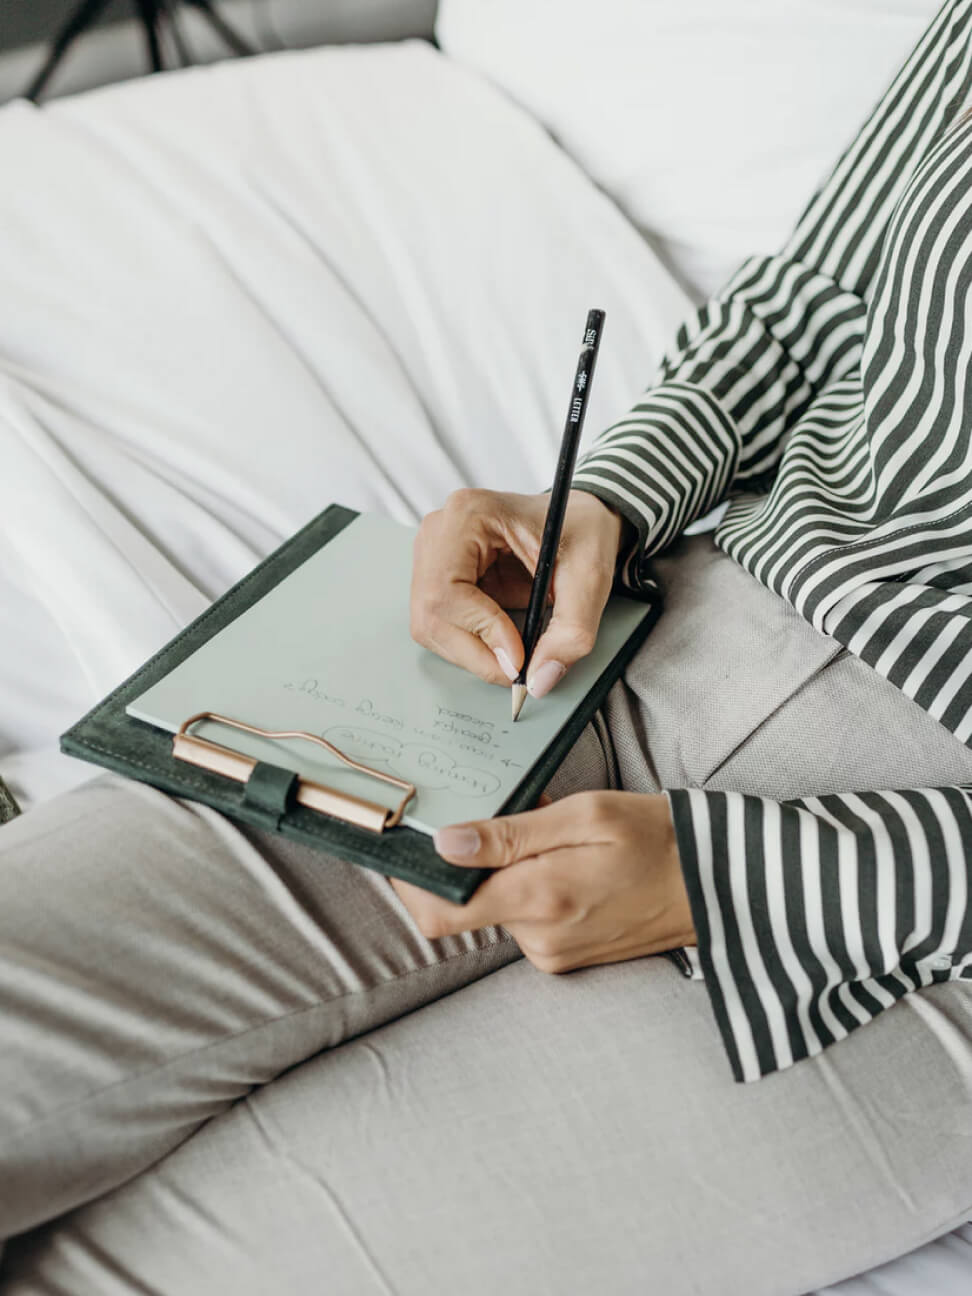 A woman writes on sheet of paper